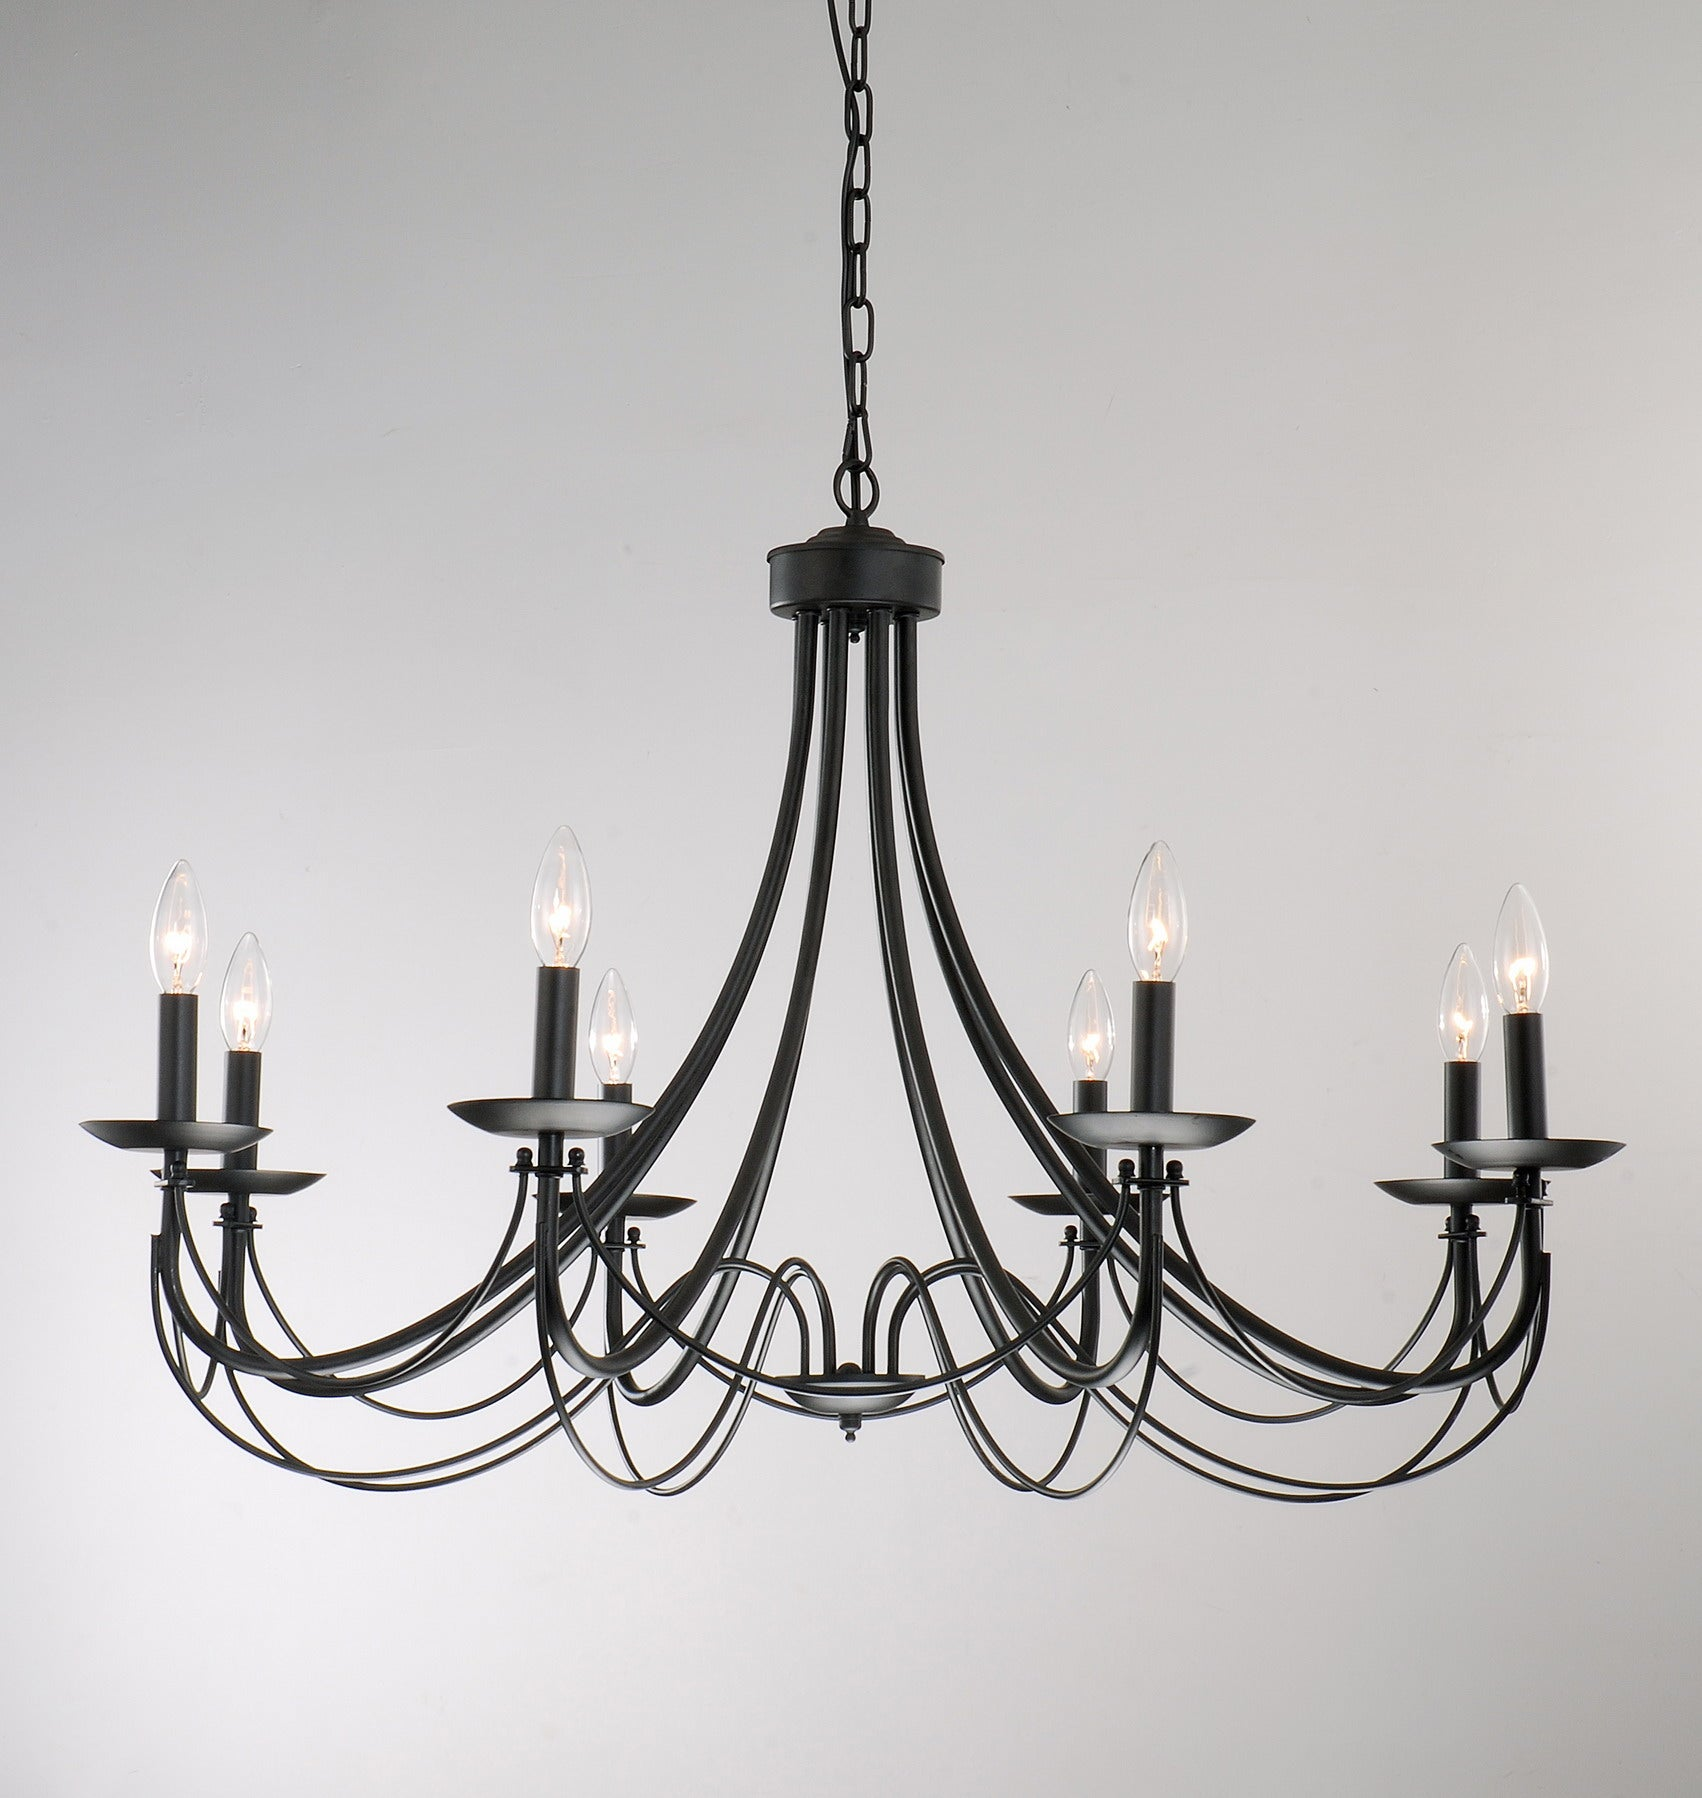 Iron 8 light black chandelier free shipping today 11387581 - Chandeliers for small spaces image ...